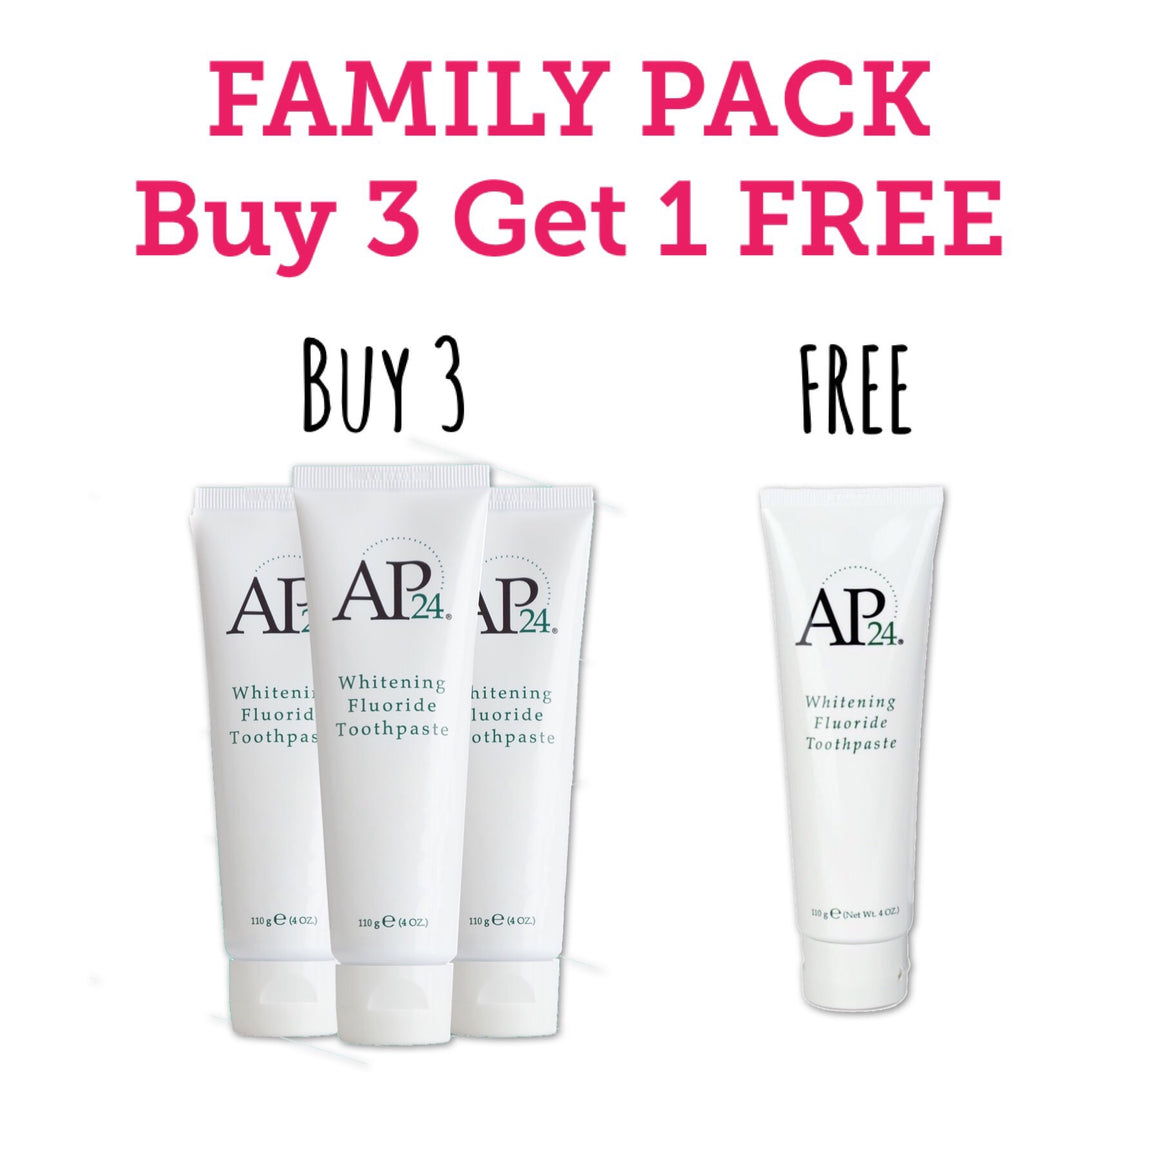 Family Pack - Buy 3 whitening toothpaste- Get 1 FREE